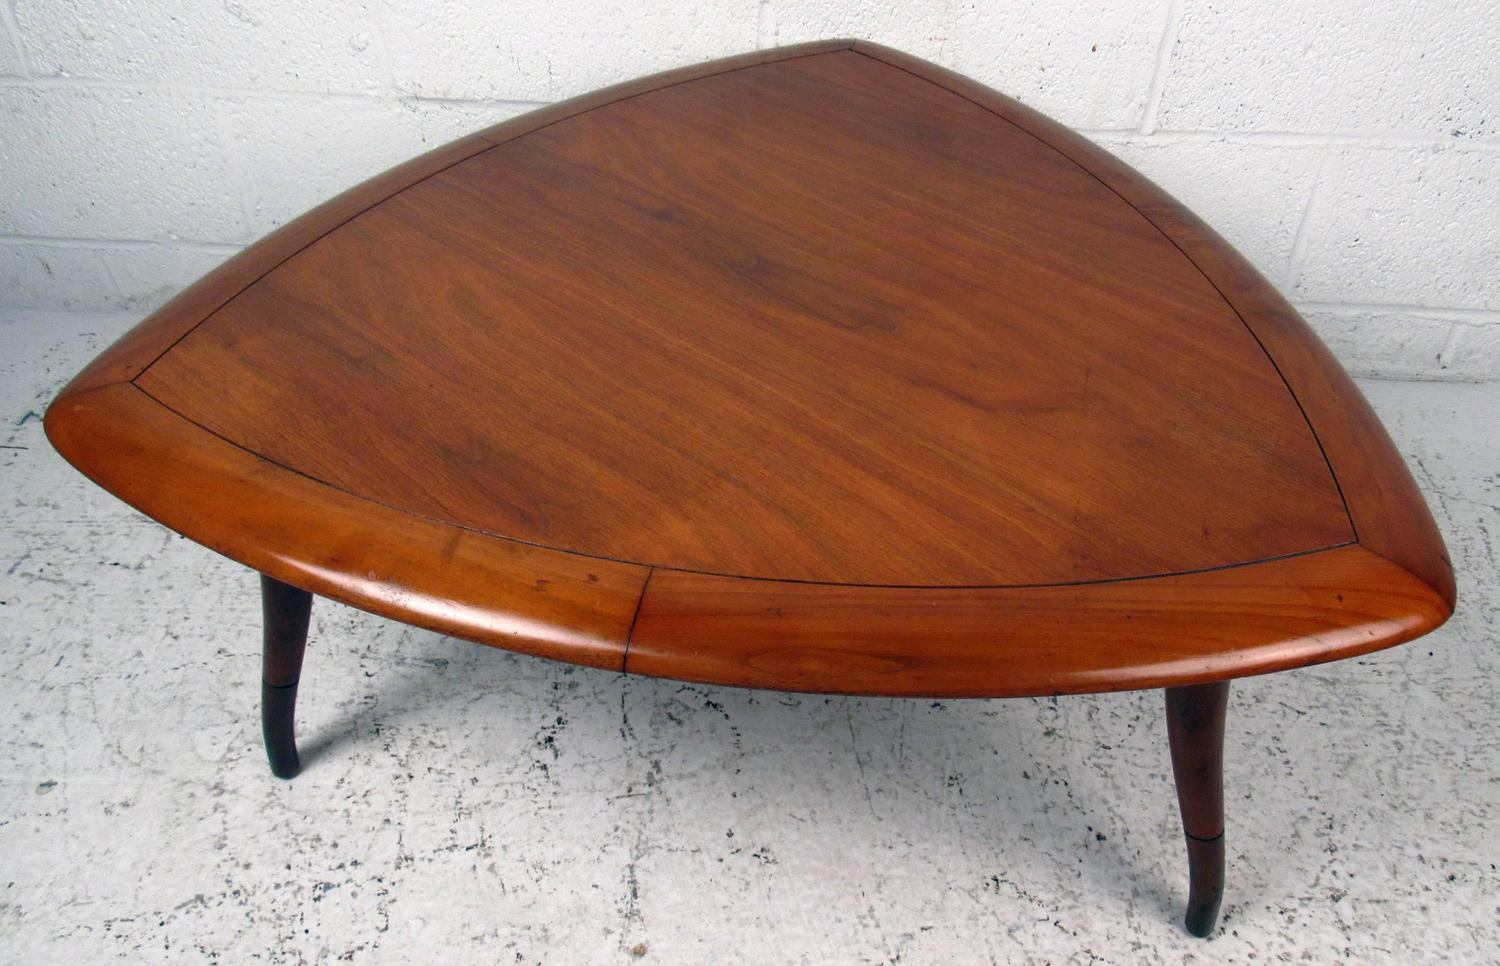 Midcentury Triangular Coffee Table By Tomlinson For Sale At 1stdibs